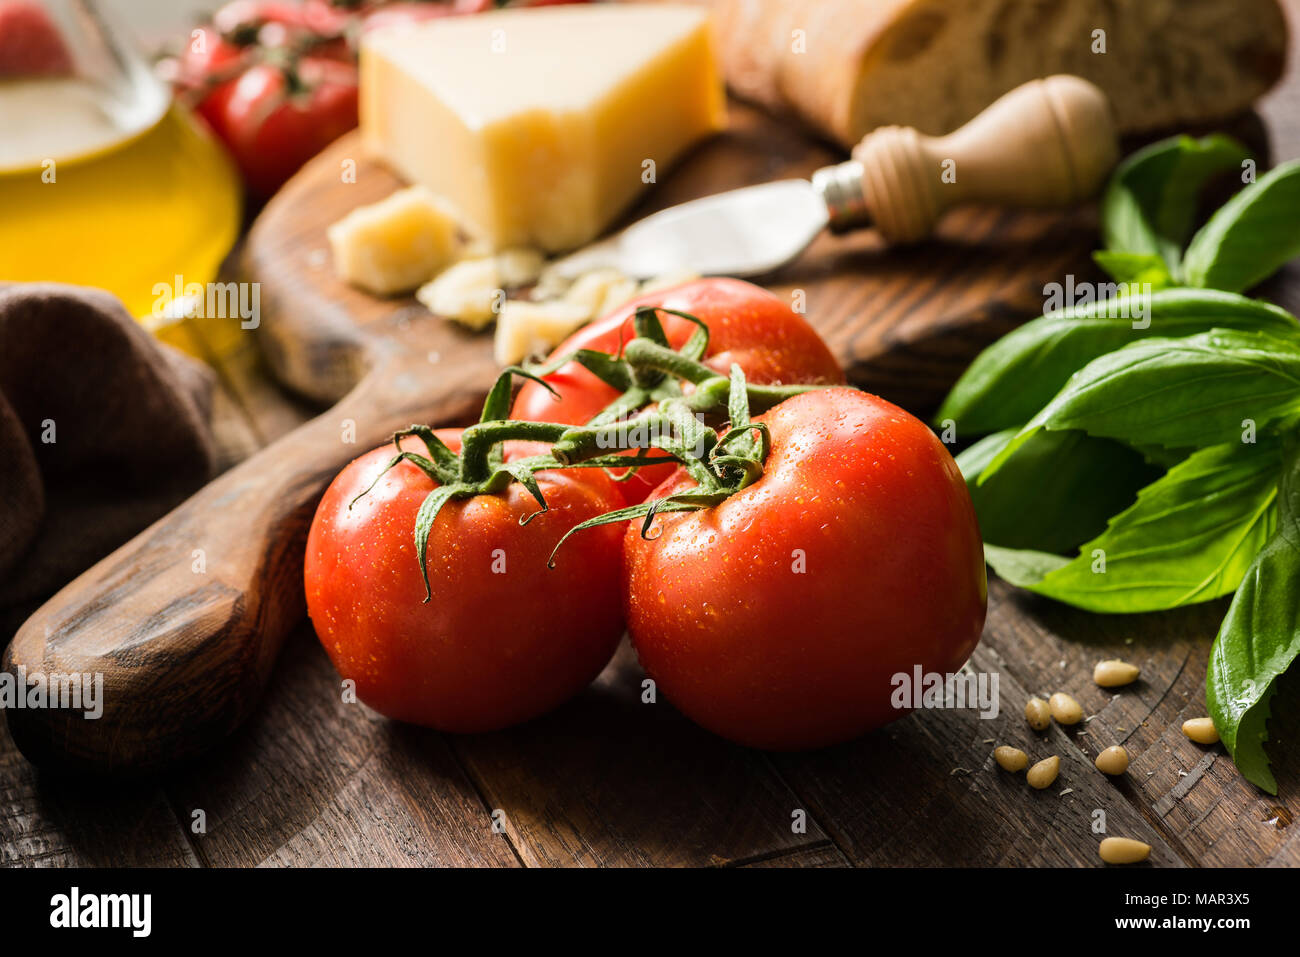 Tomatoes on vine, olive oil and parmesan cheese. Italian food background or still life - Stock Image